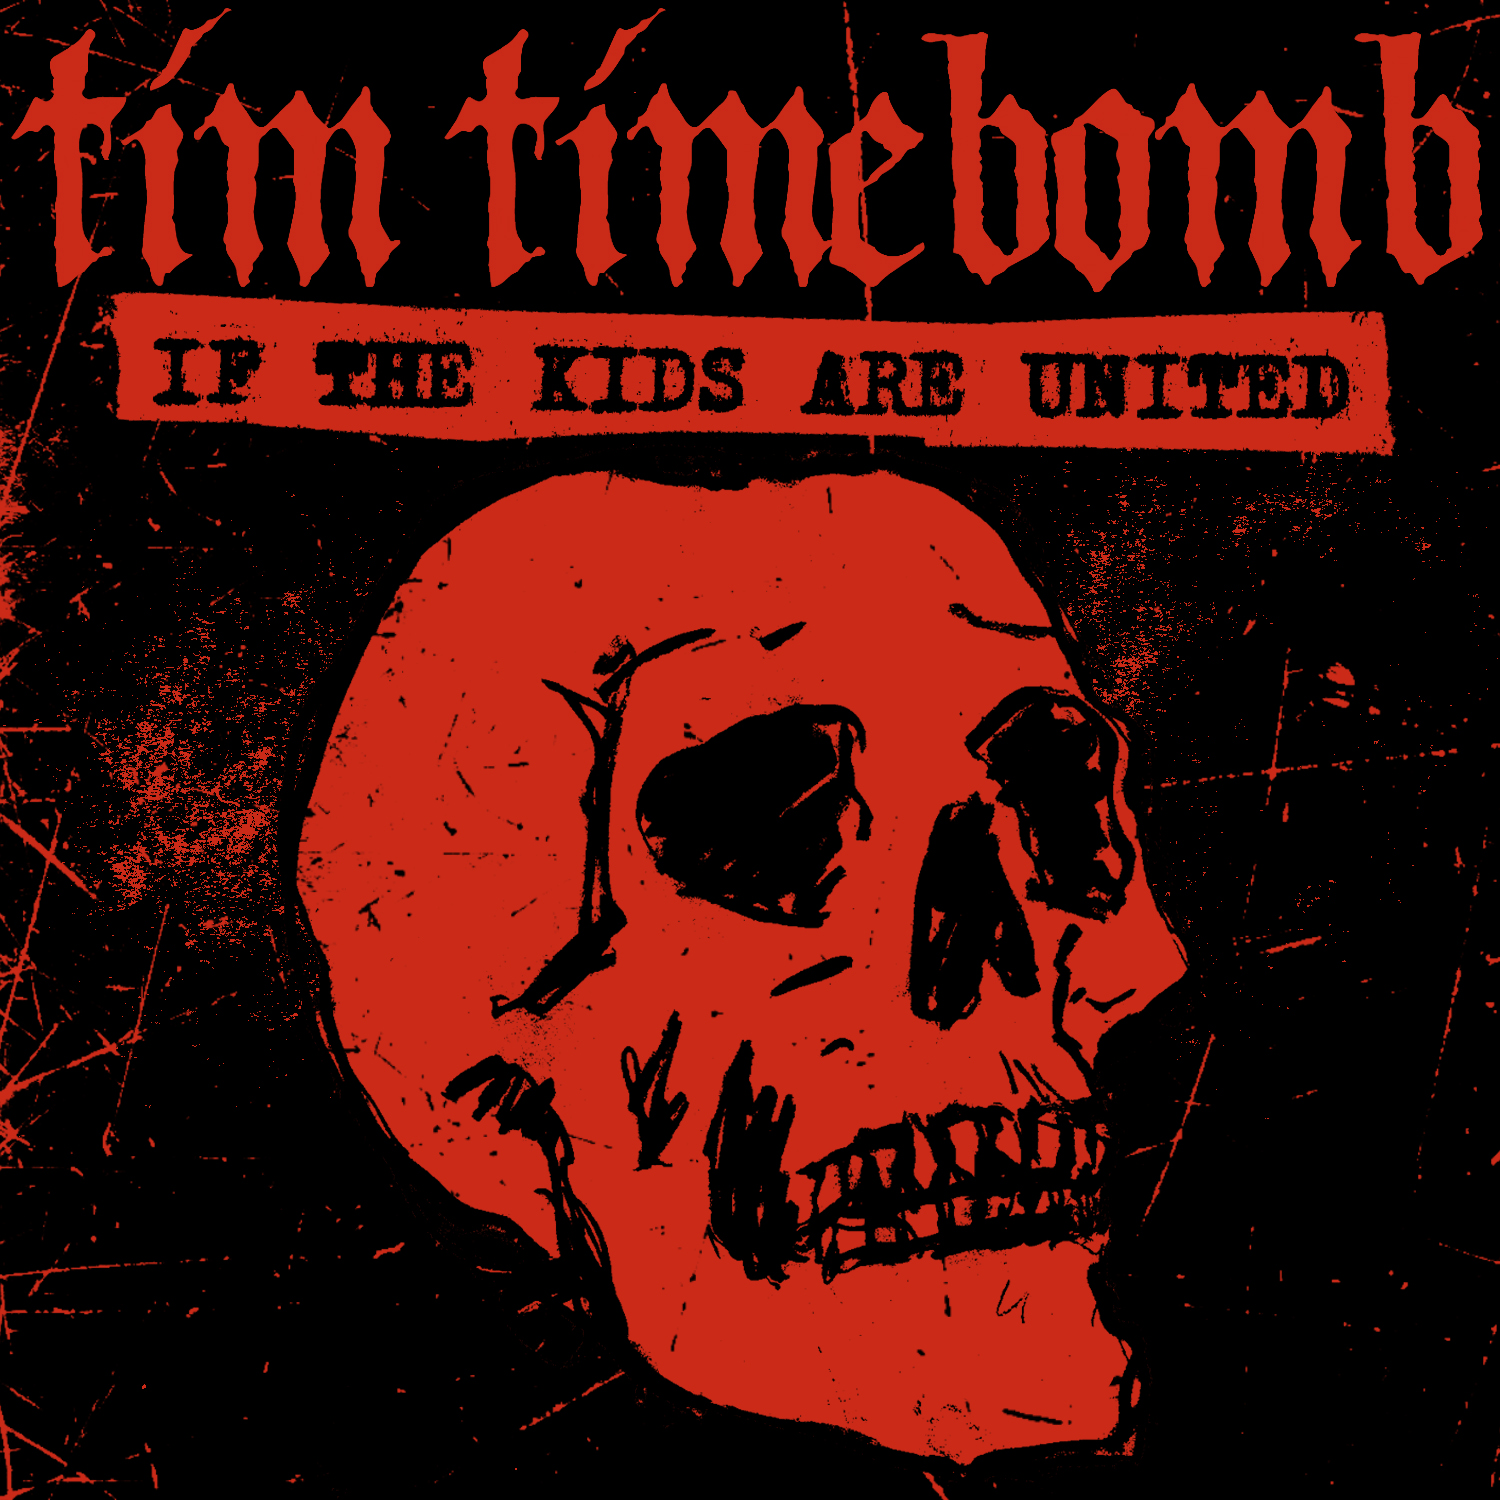 ___IF THE KIDS ARE UNITED